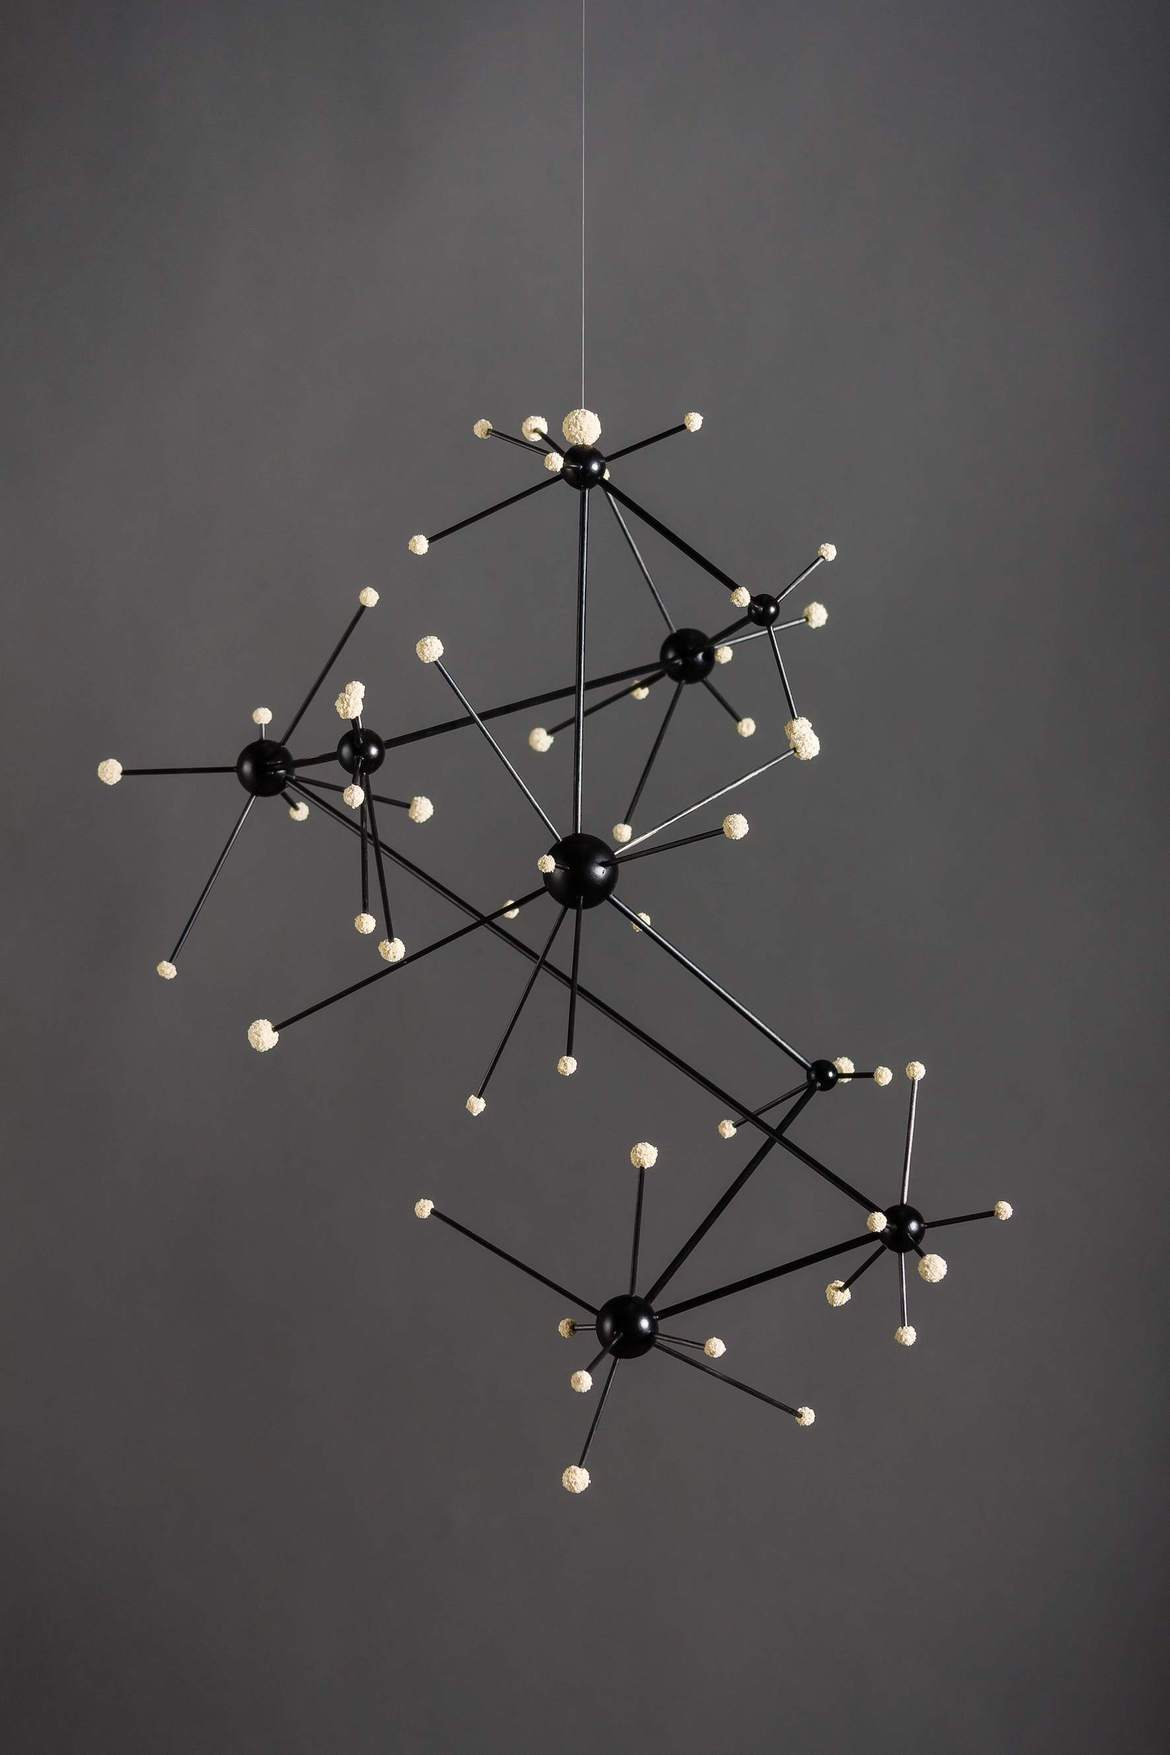 'COSMIC CONNECTION', 2013, wooden spheres, glass fibre rods, foam rubber balls, nylon filament, approximately 32 x 32 x 32 cm